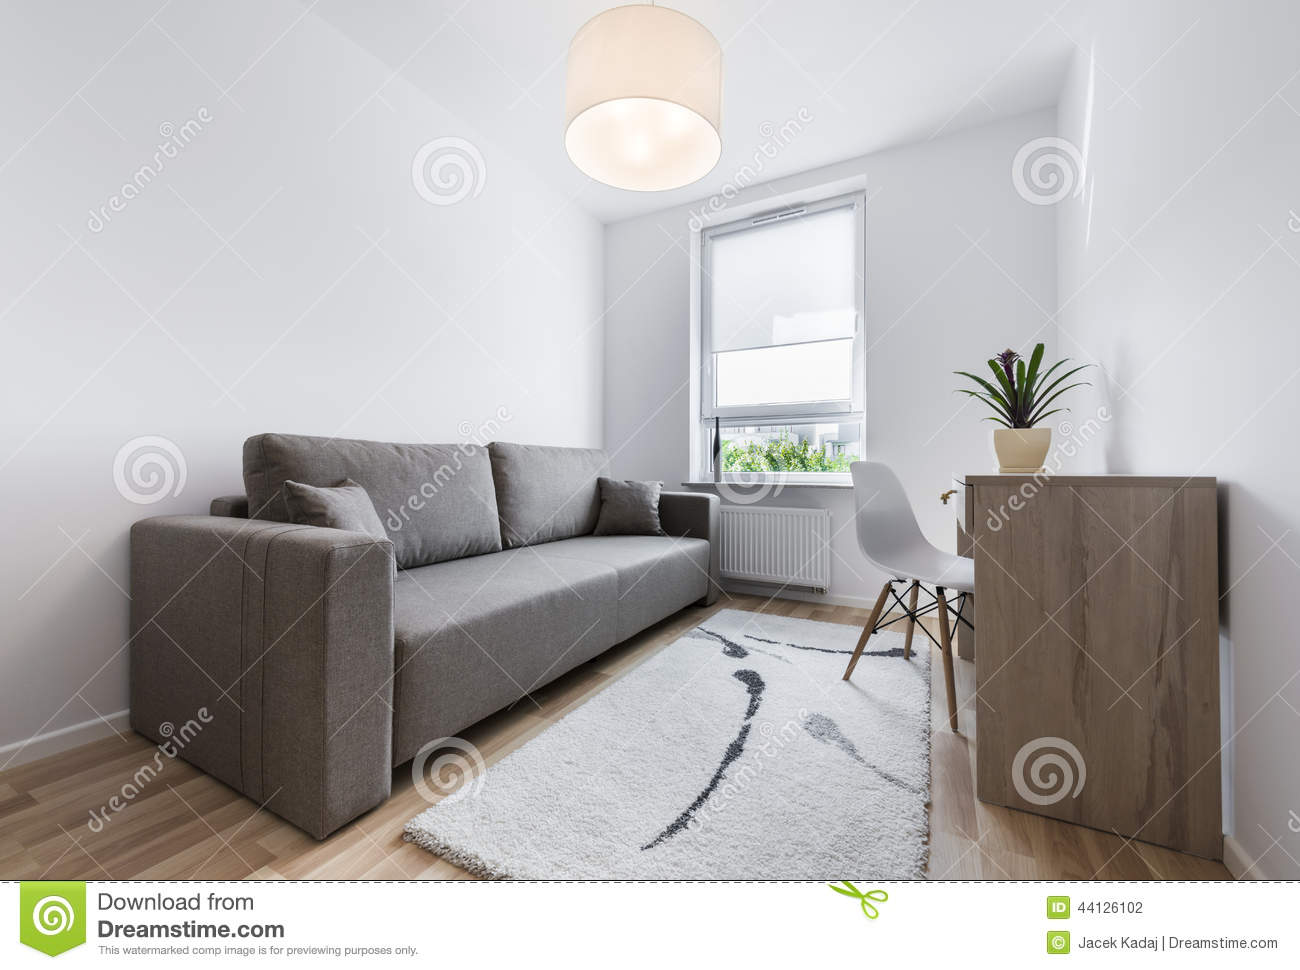 Compact modern sleeping room interior design stock photo for Sleeping room interior design